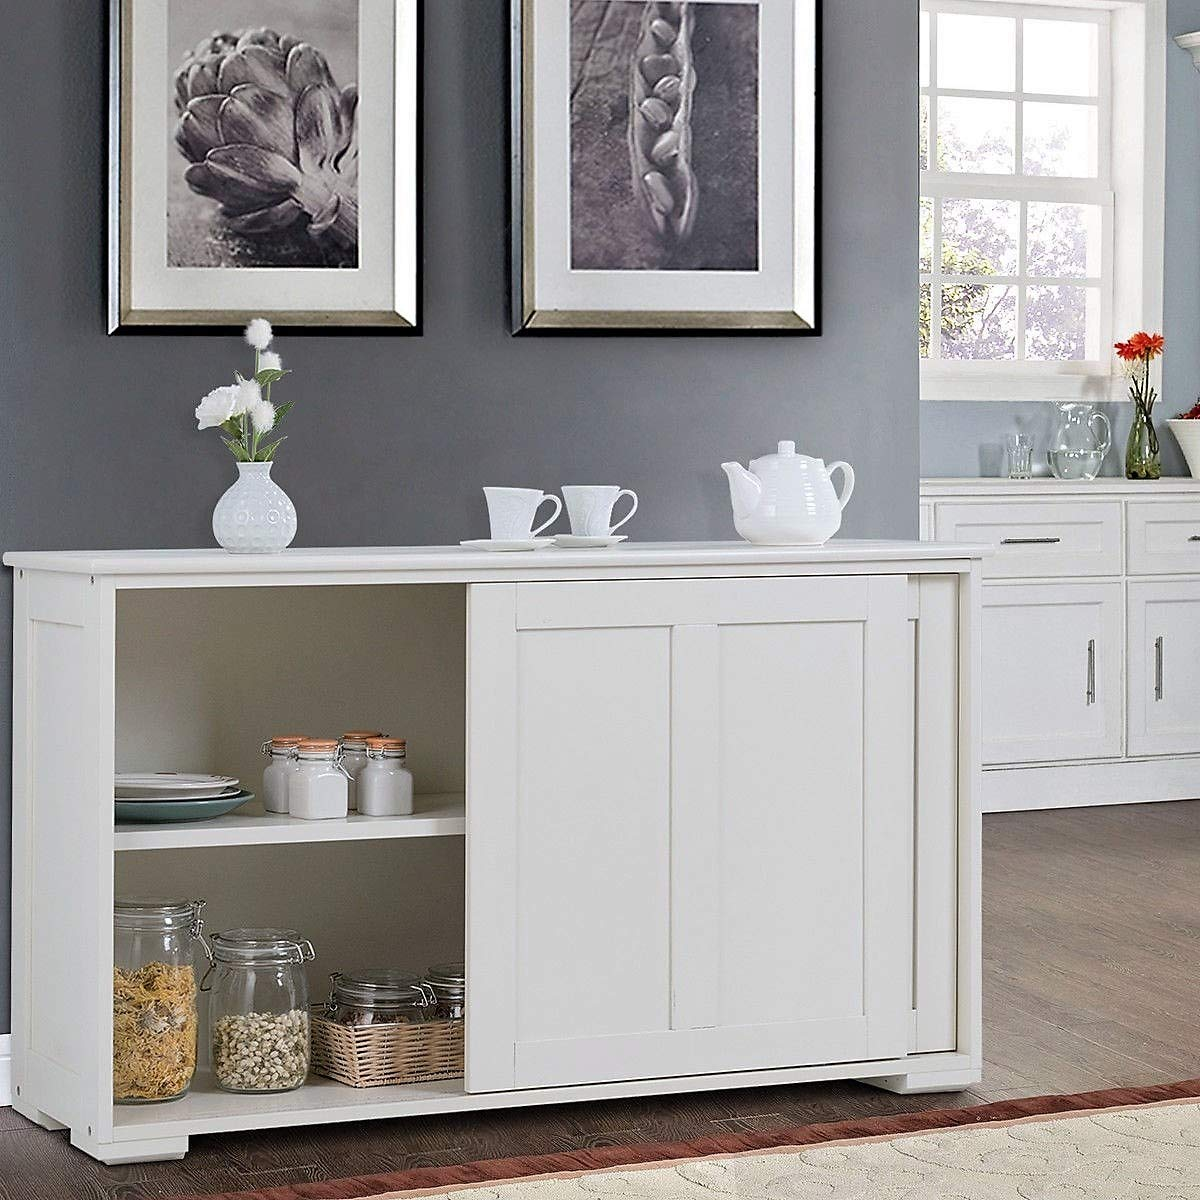 Lucky-gift - Kitchen Storage Cupboard Cabinet with Sliding Door - Sliding Door Cupboard Storage Cabinet Kitchen Buffet - Sideboard Pantry Glass Wood New Farmhouse Bookcase White Rustic Barn Dining